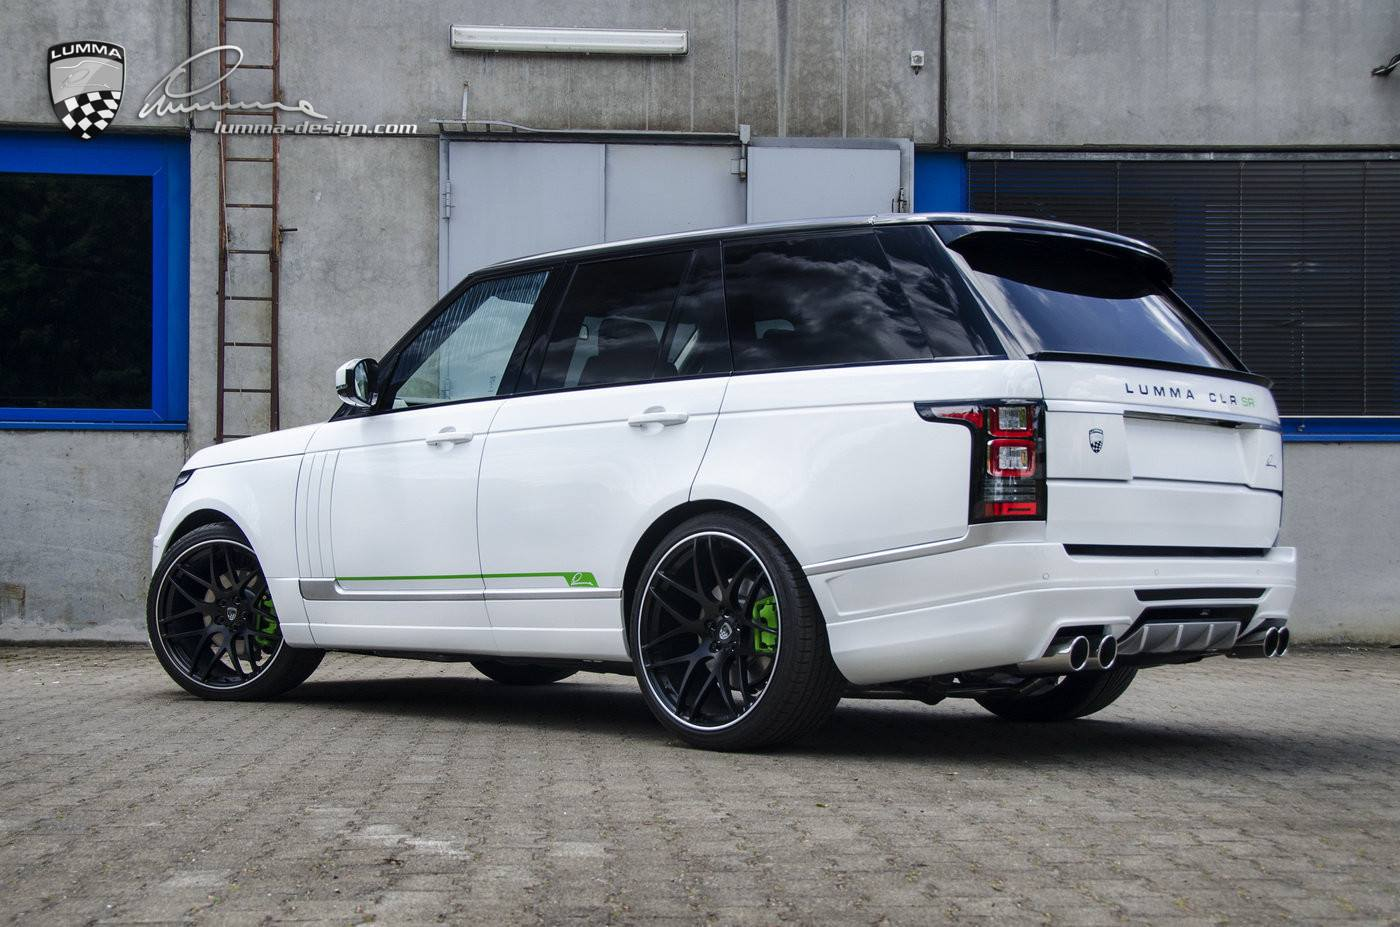 66 Auto Sales >> Lumma Design CLR SR Tuning Package for Range Rover Unveiled - autoevolution